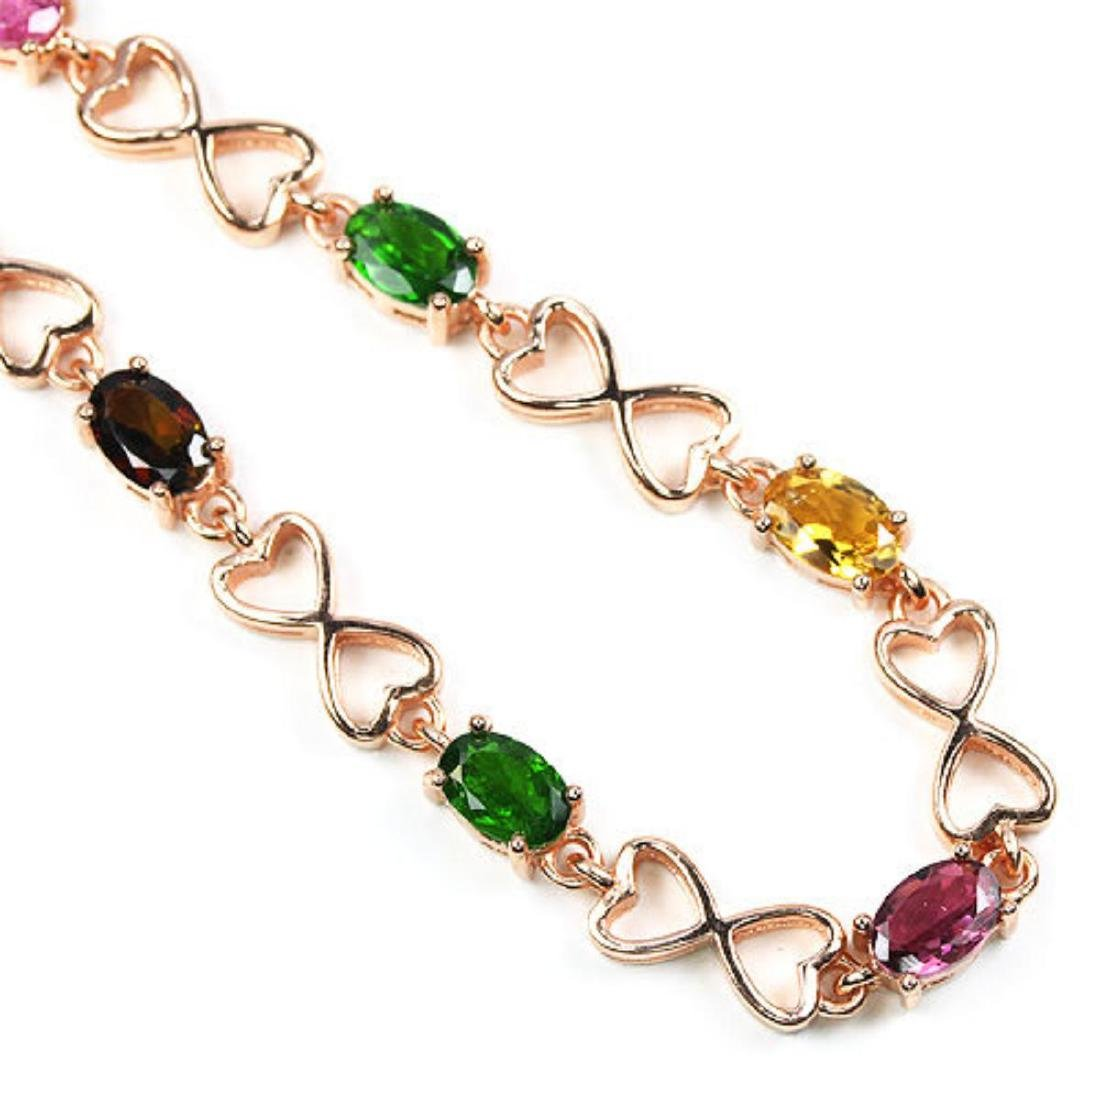 Natural MULTI COLOR TOURMALINE CHROME DIOPSIDE Bracelet - 2